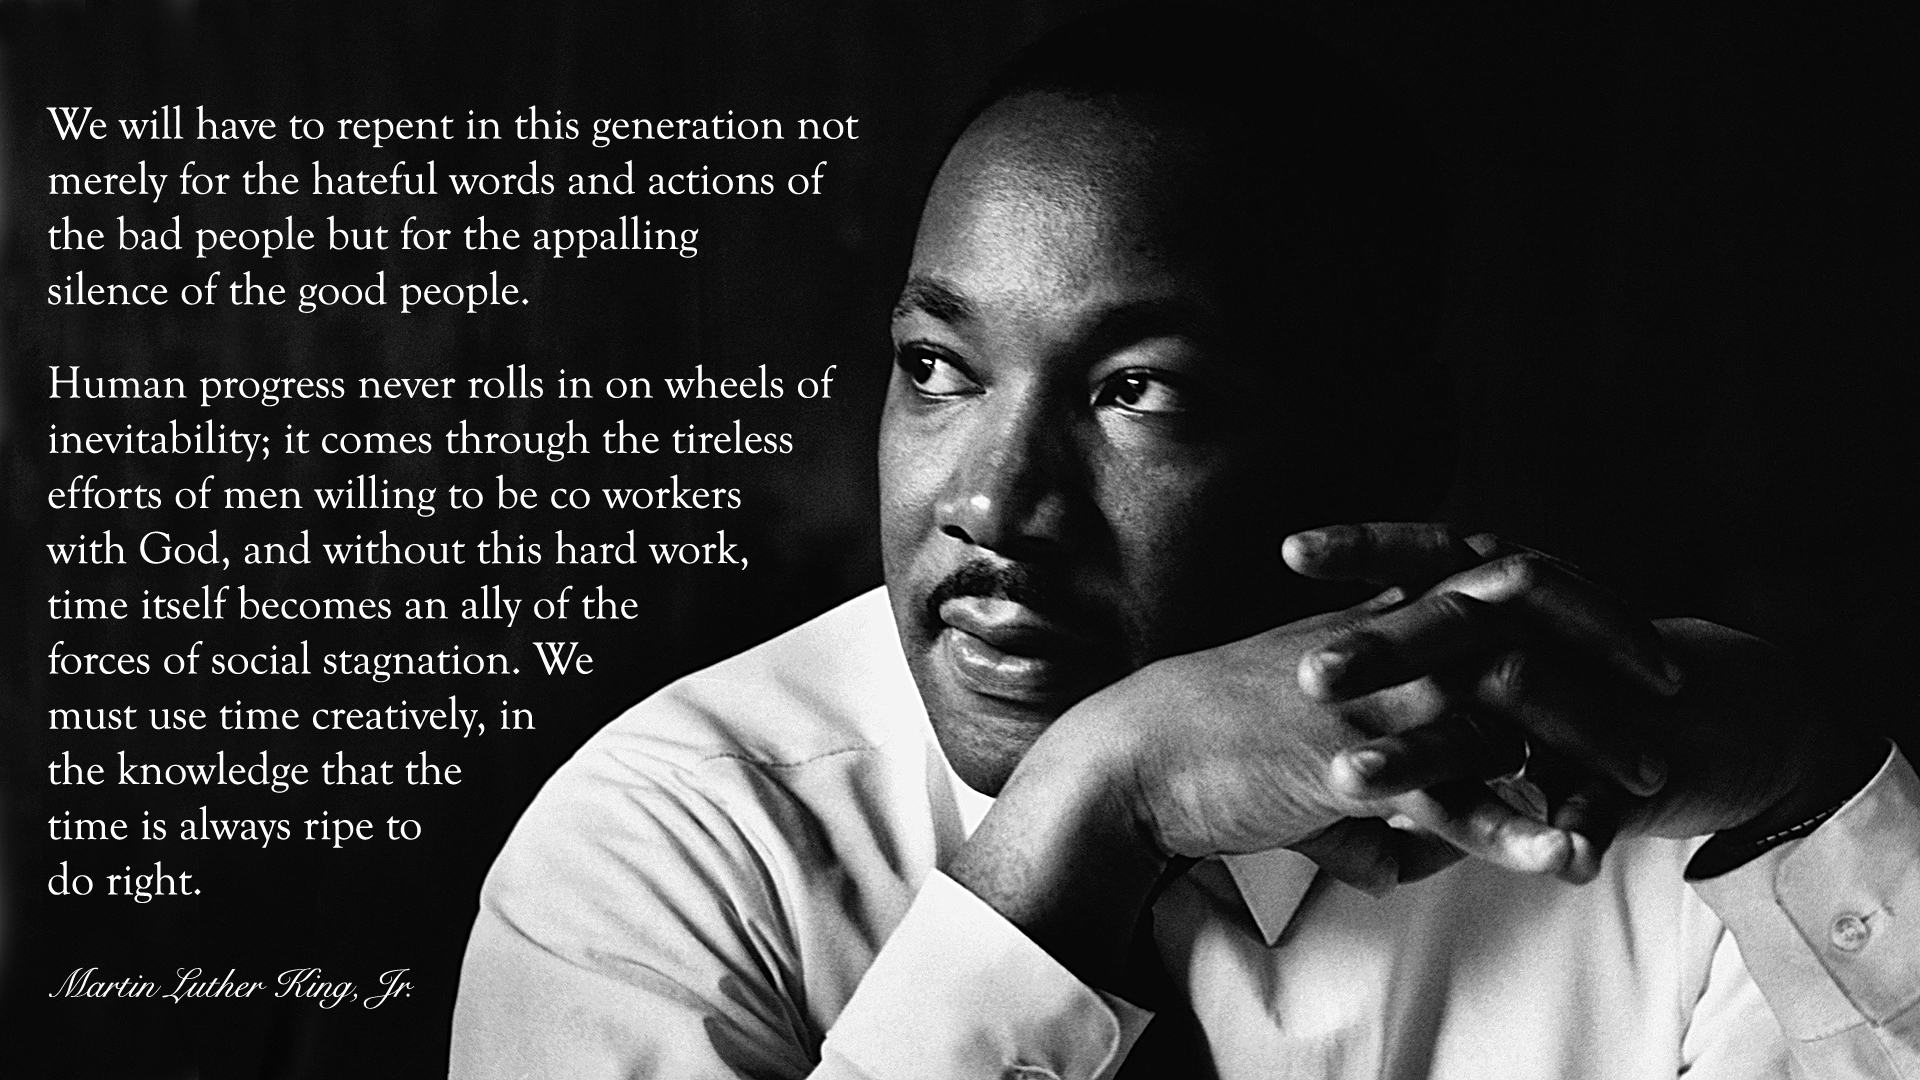 Quotes From Mlk Letter From Birmingham Jail: The Time Is Always Ripe To Do Right.